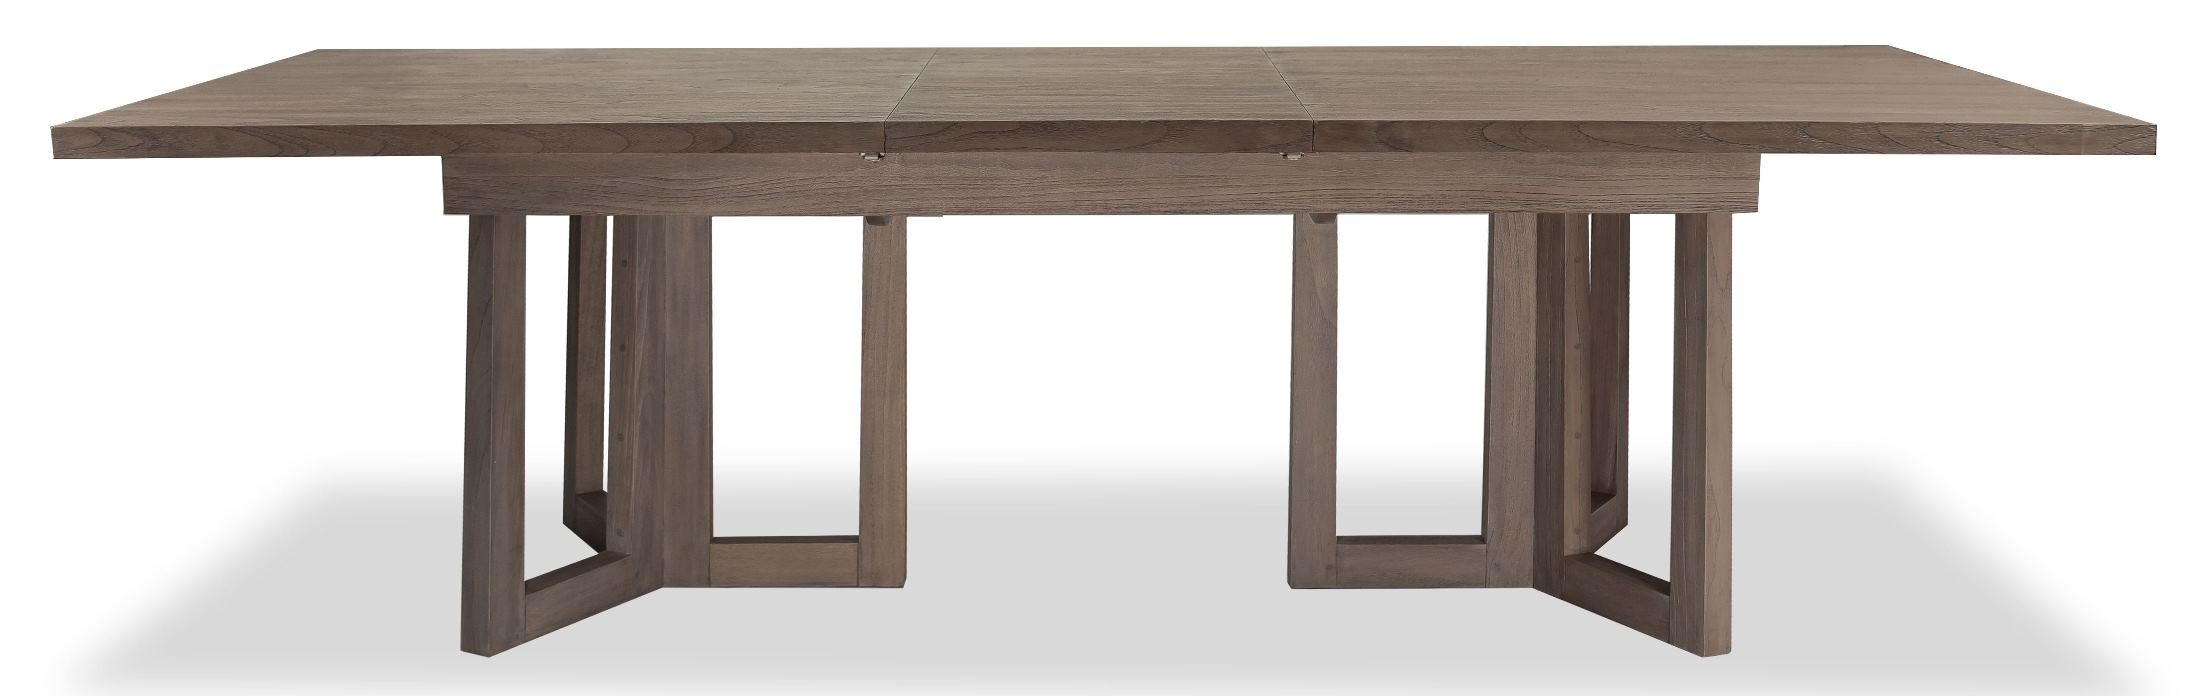 palmer extendable dining room table from brownstone pl302 coleman